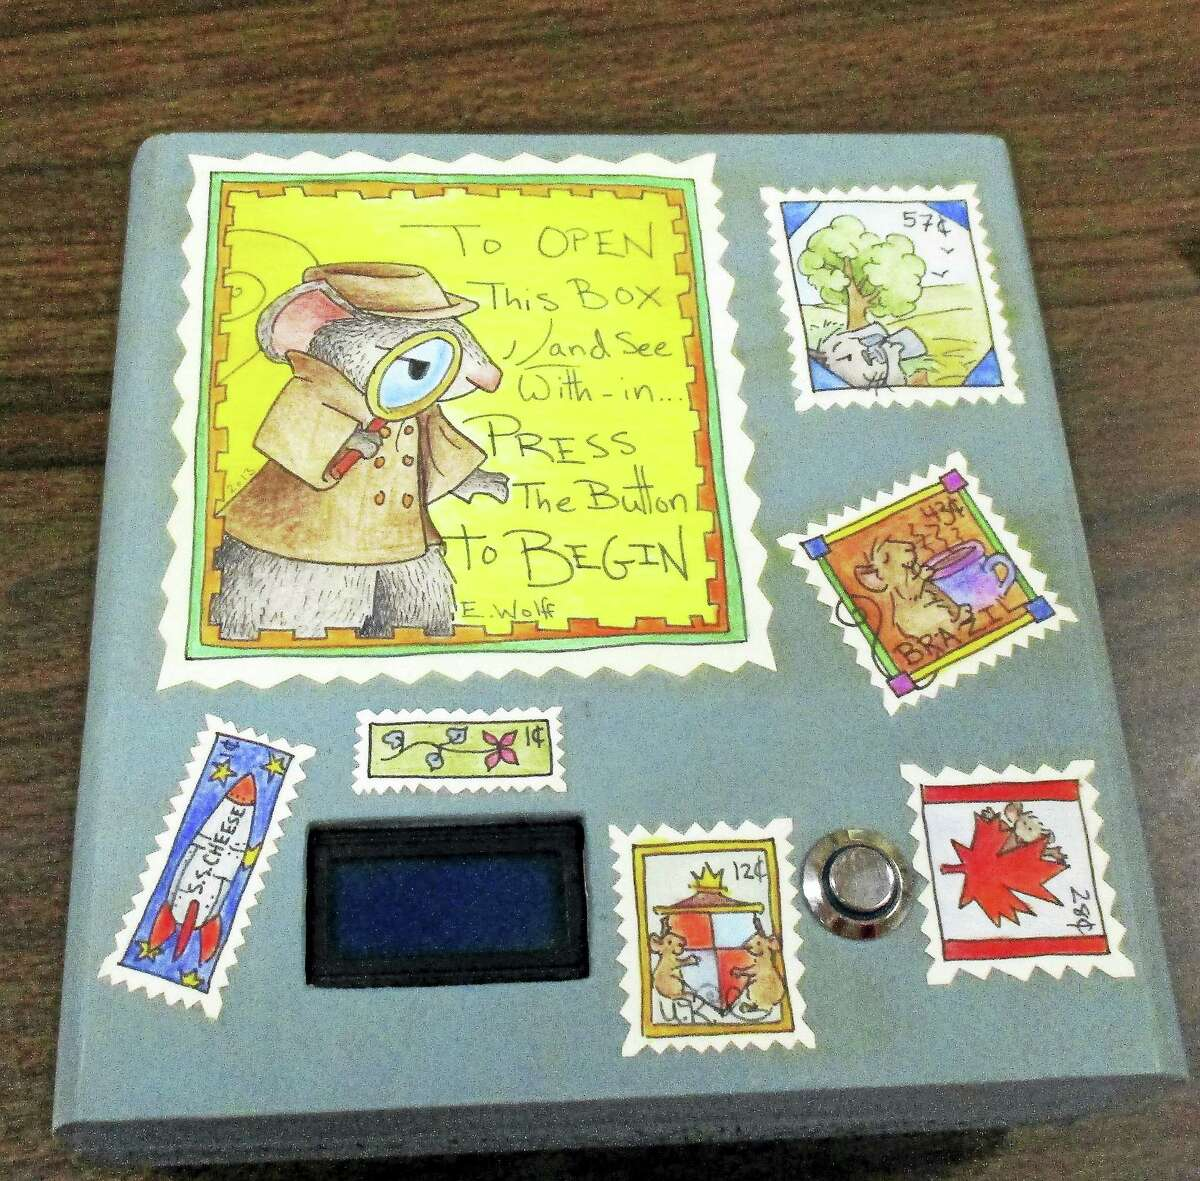 The Mystery Puzzle Box, designed by Denis Williamson and decorated by artist Elizabeth Wolff, is one of the prizes available for bidding at the Morris Public Library's annual fundraiser, Art Around the Box.